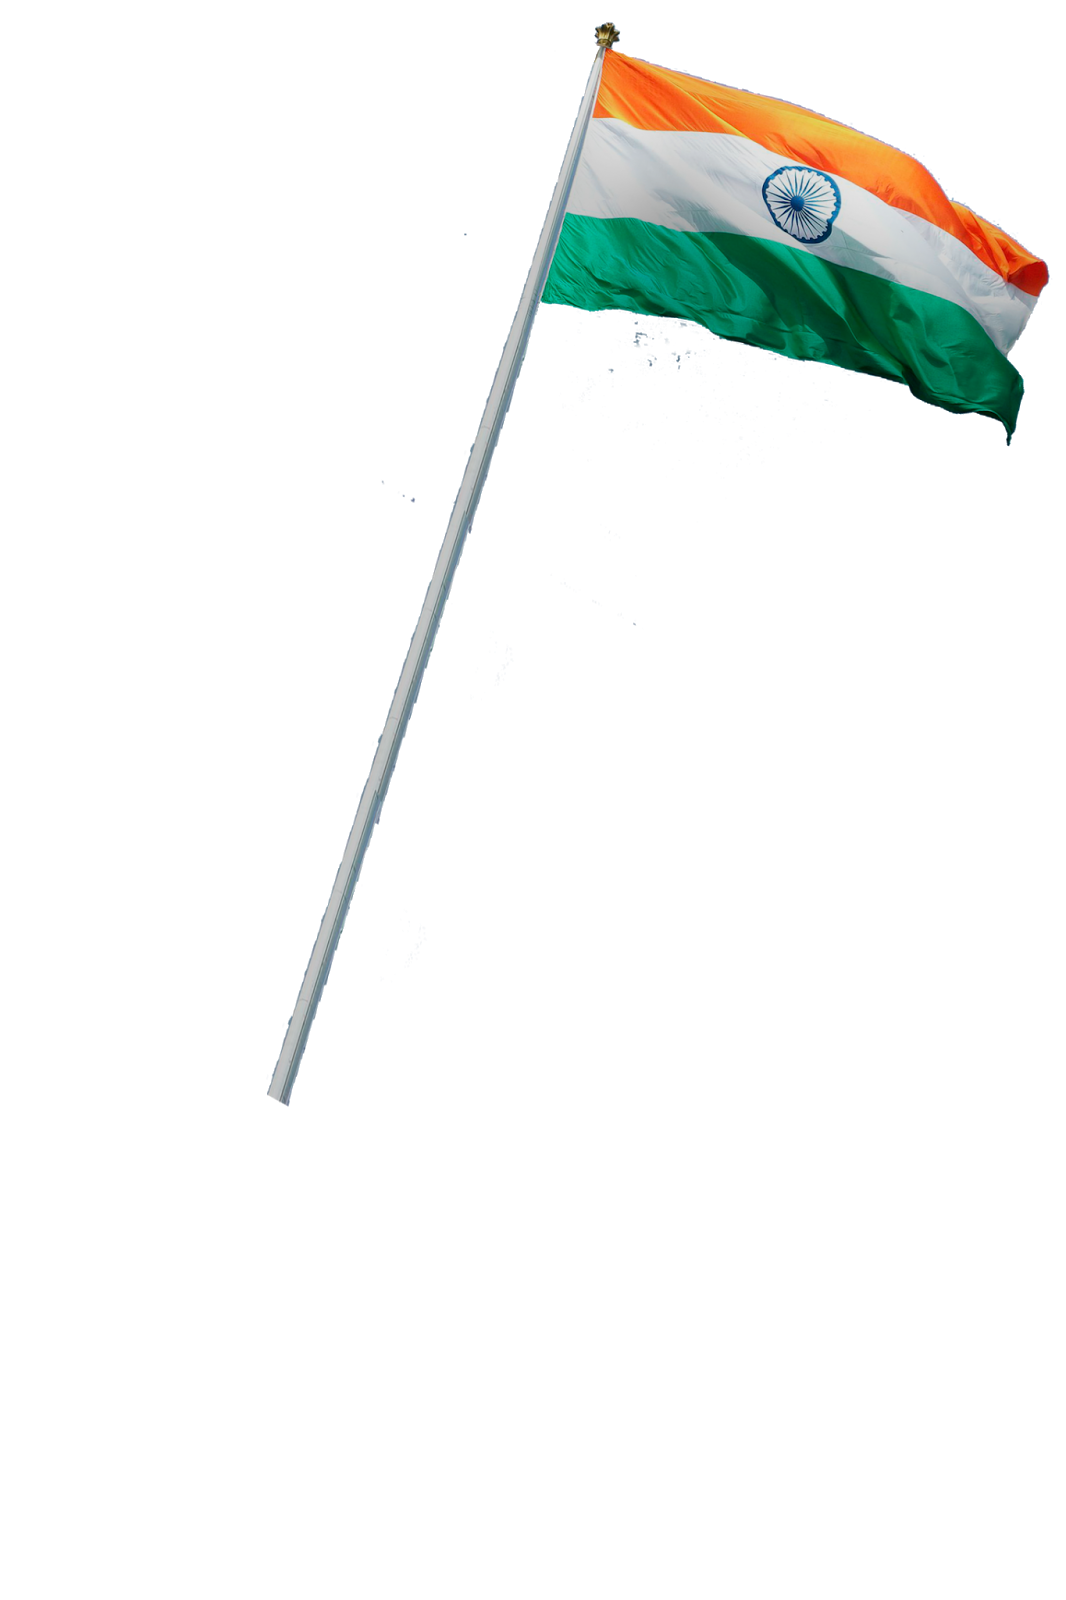 2018 INDIAN FLAG PNG BY Learningwithsrblogspot